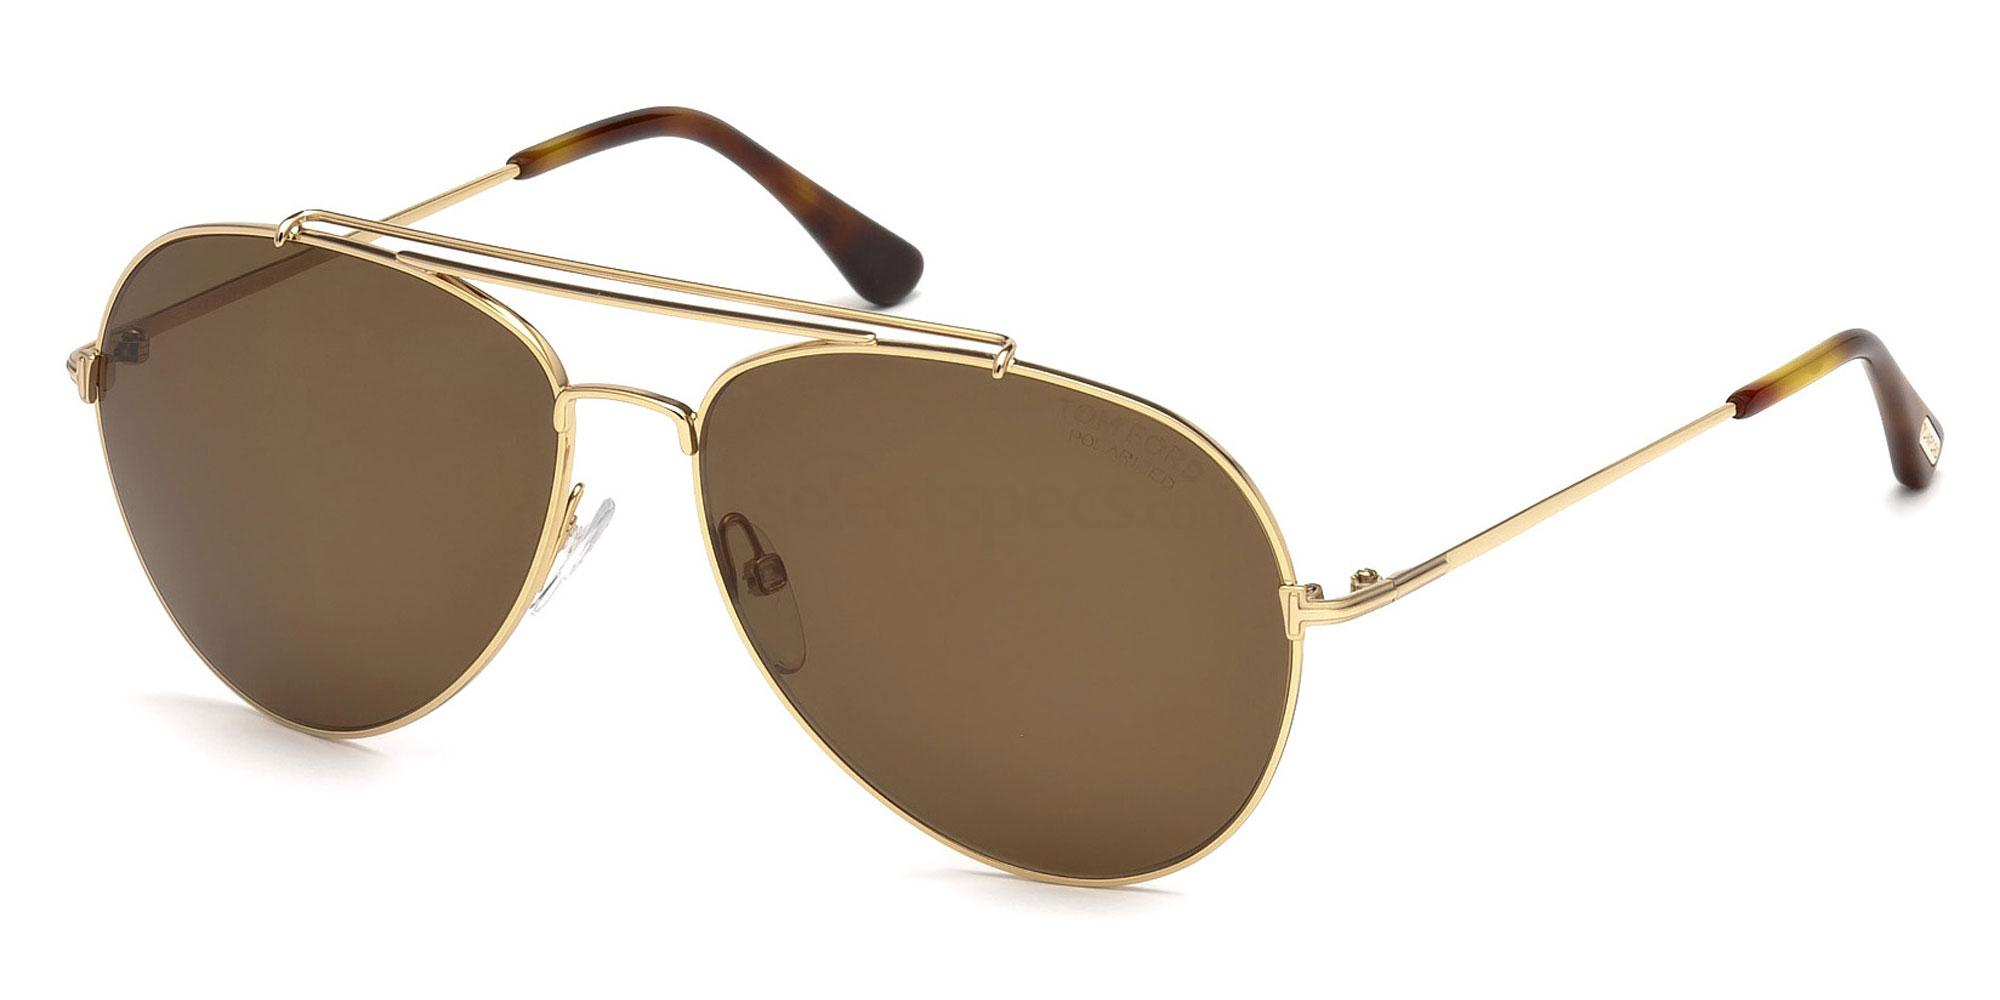 28H FT0497 Sunglasses, Tom Ford